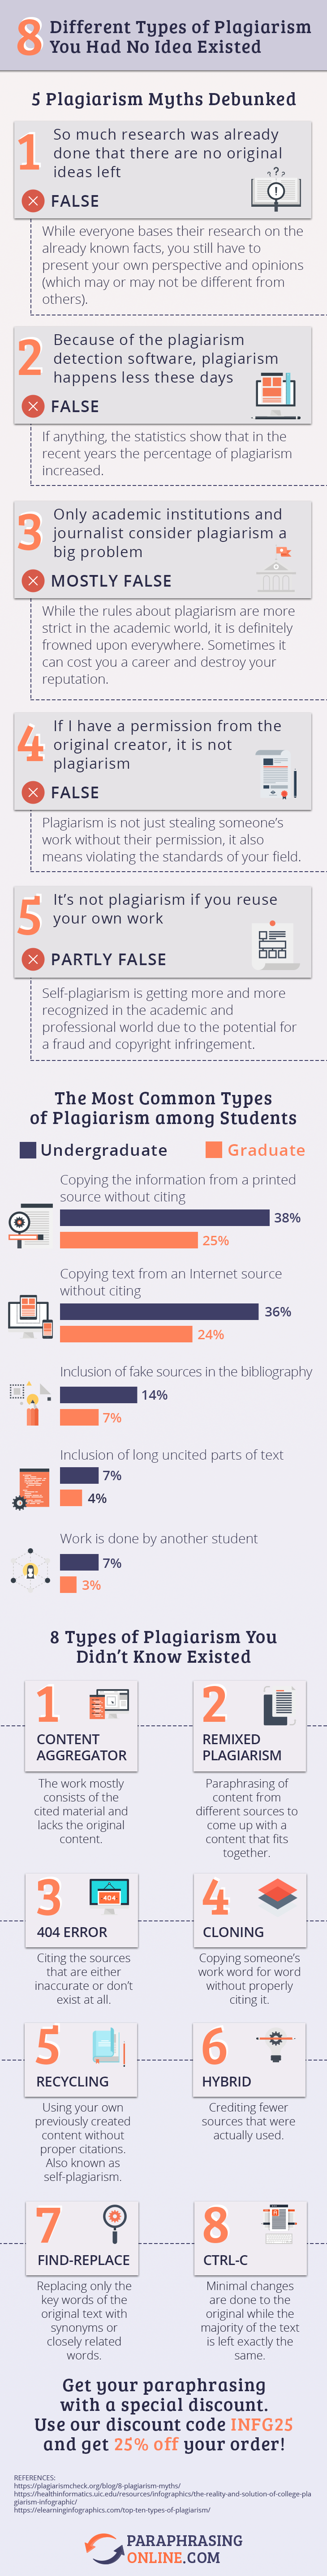 The Blight of Unoriginality: Understanding Different Types of Plagiarism - Infographic